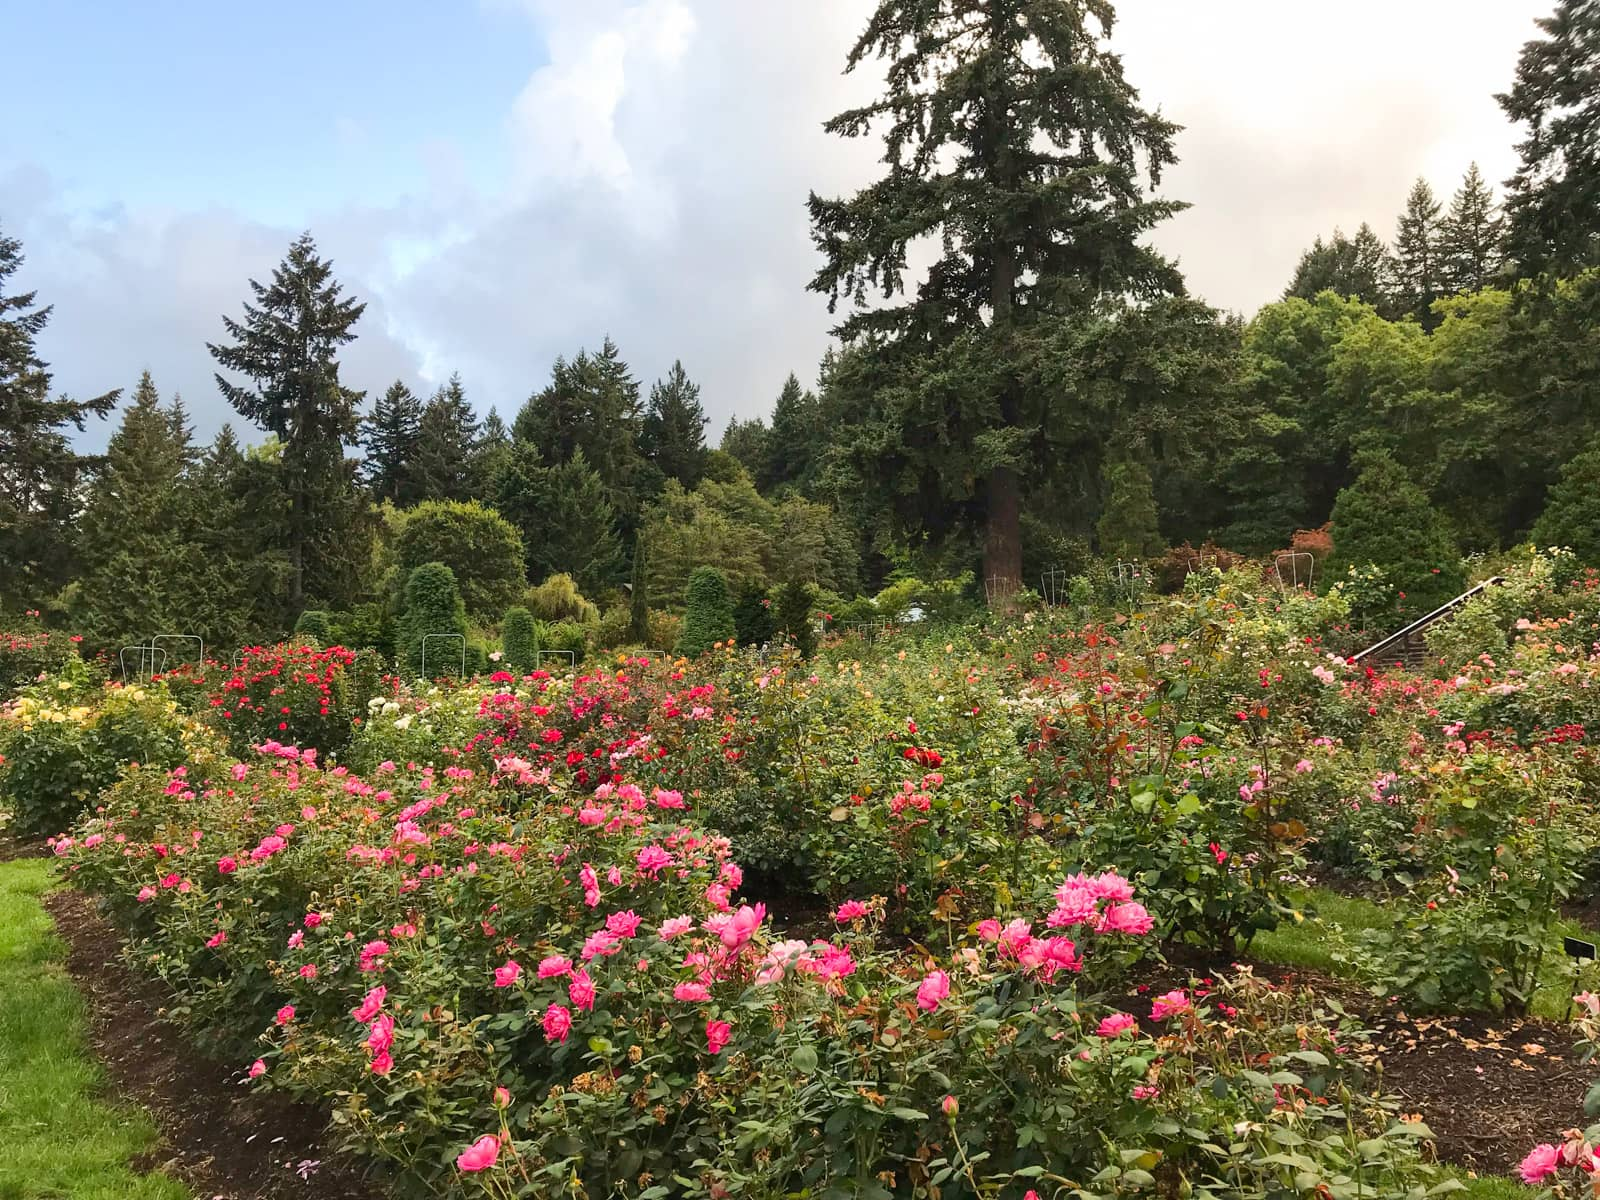 A large rose garden with many rose bushes planted tightly together, in various shades of red and pink